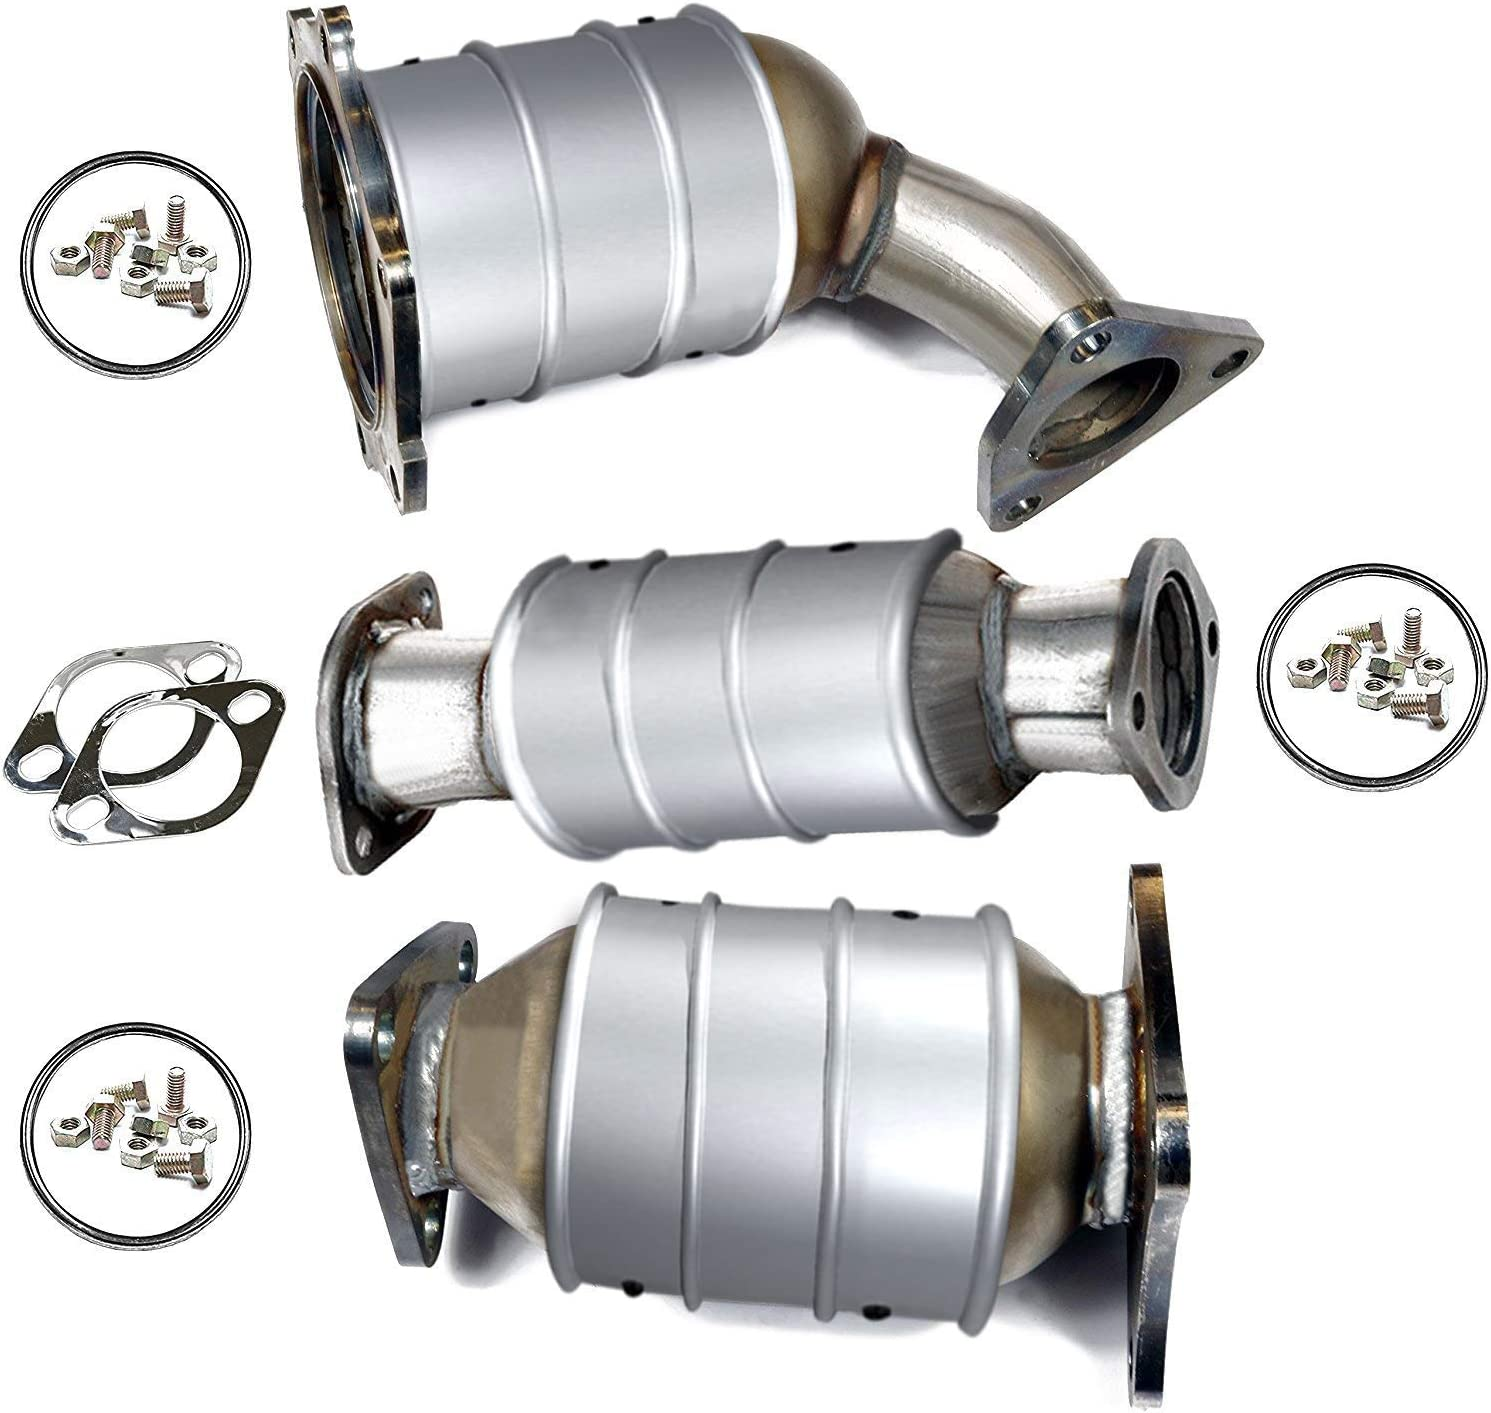 2002-2004 INFINITI I35 3.5L REAR CATALYTIC CONVERTER DIRECT FIT FITS